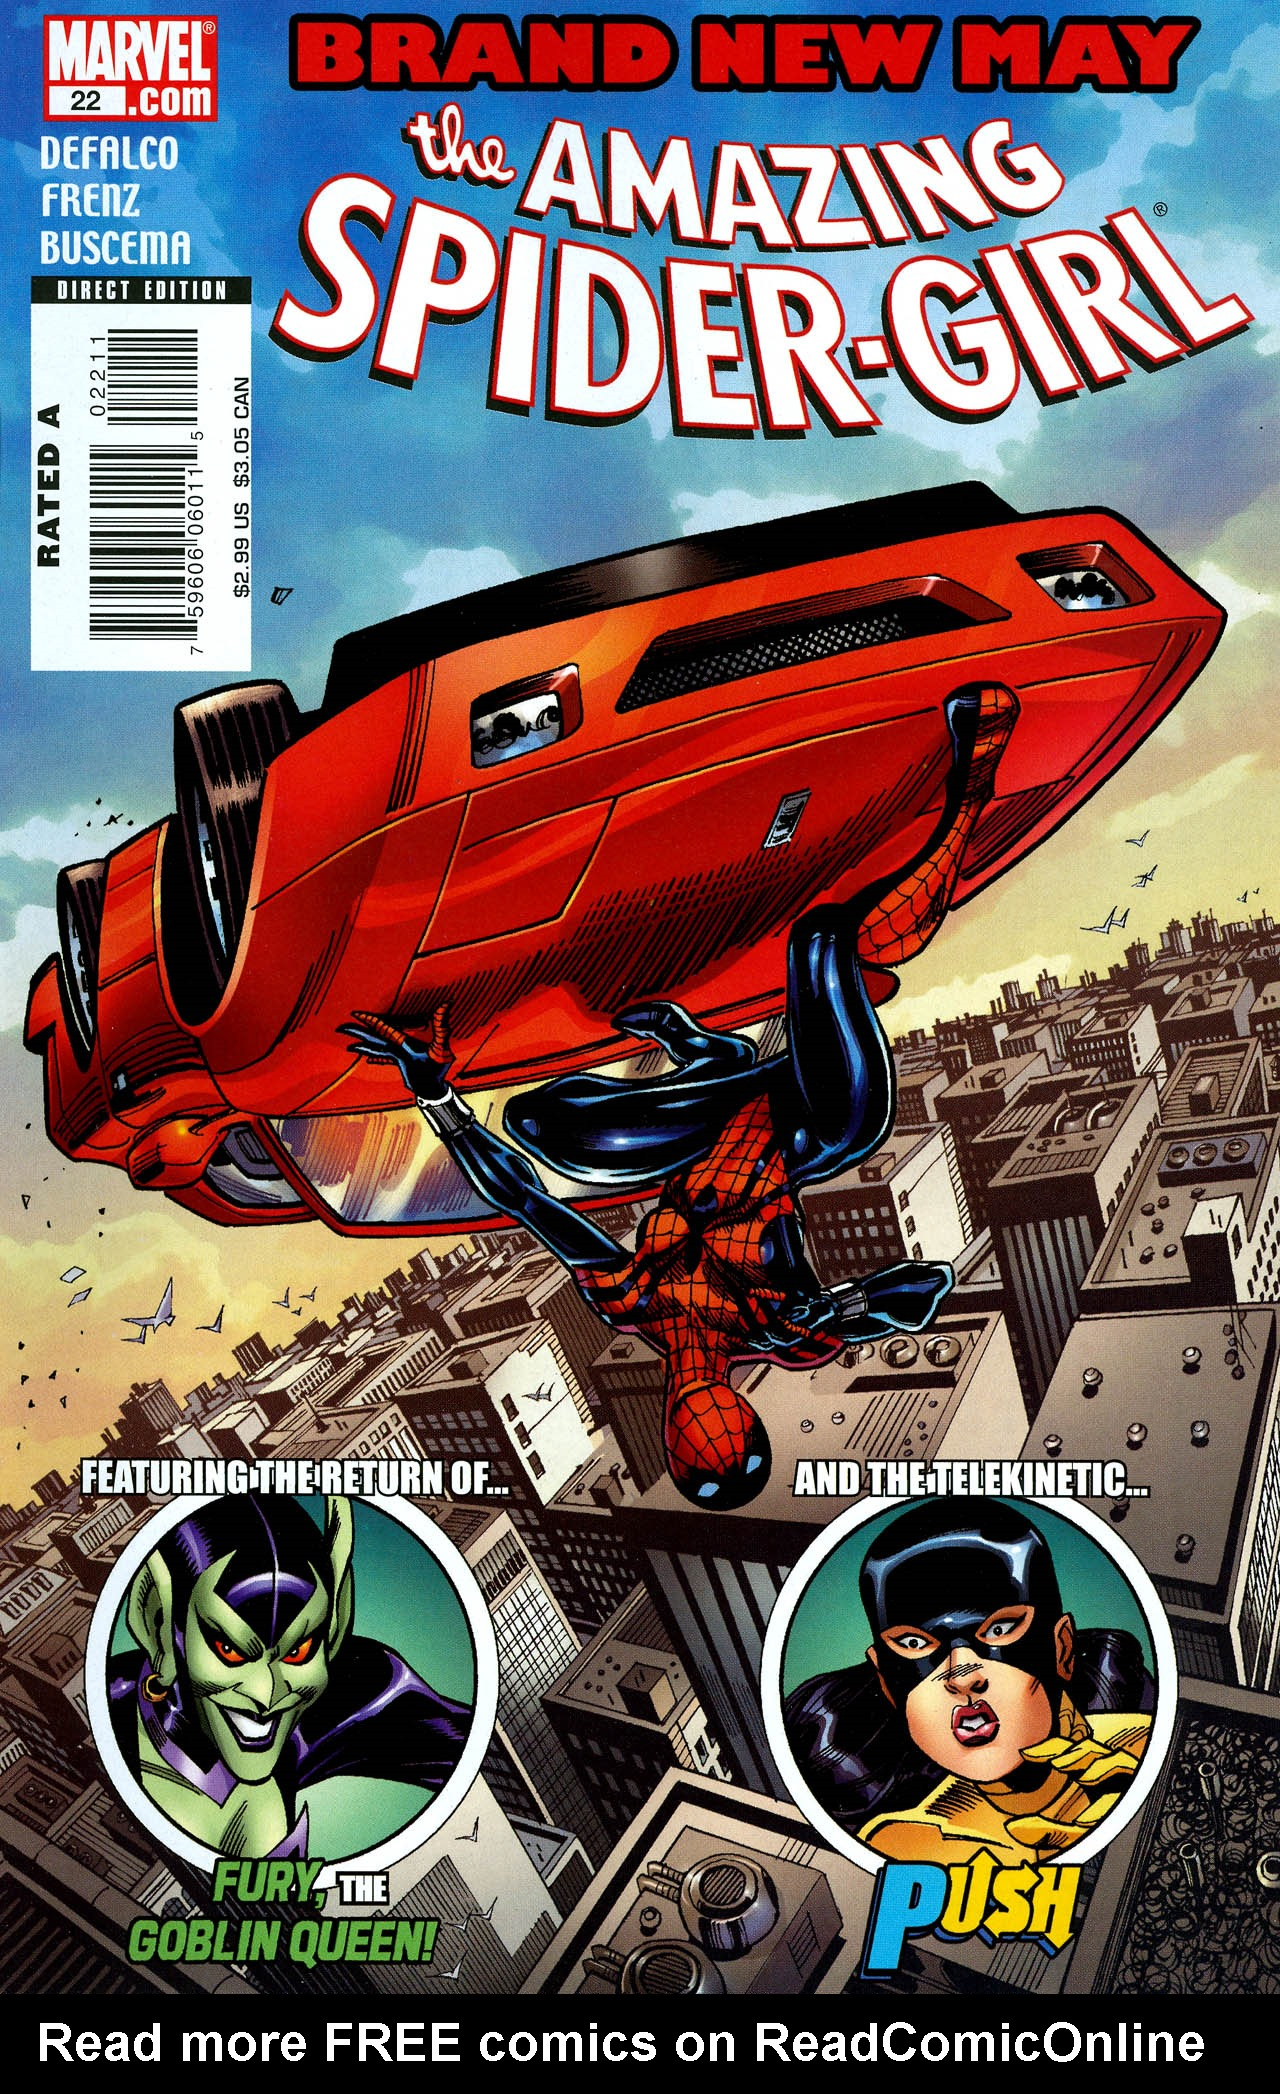 Read online Amazing Spider-Girl comic -  Issue #22 - 1